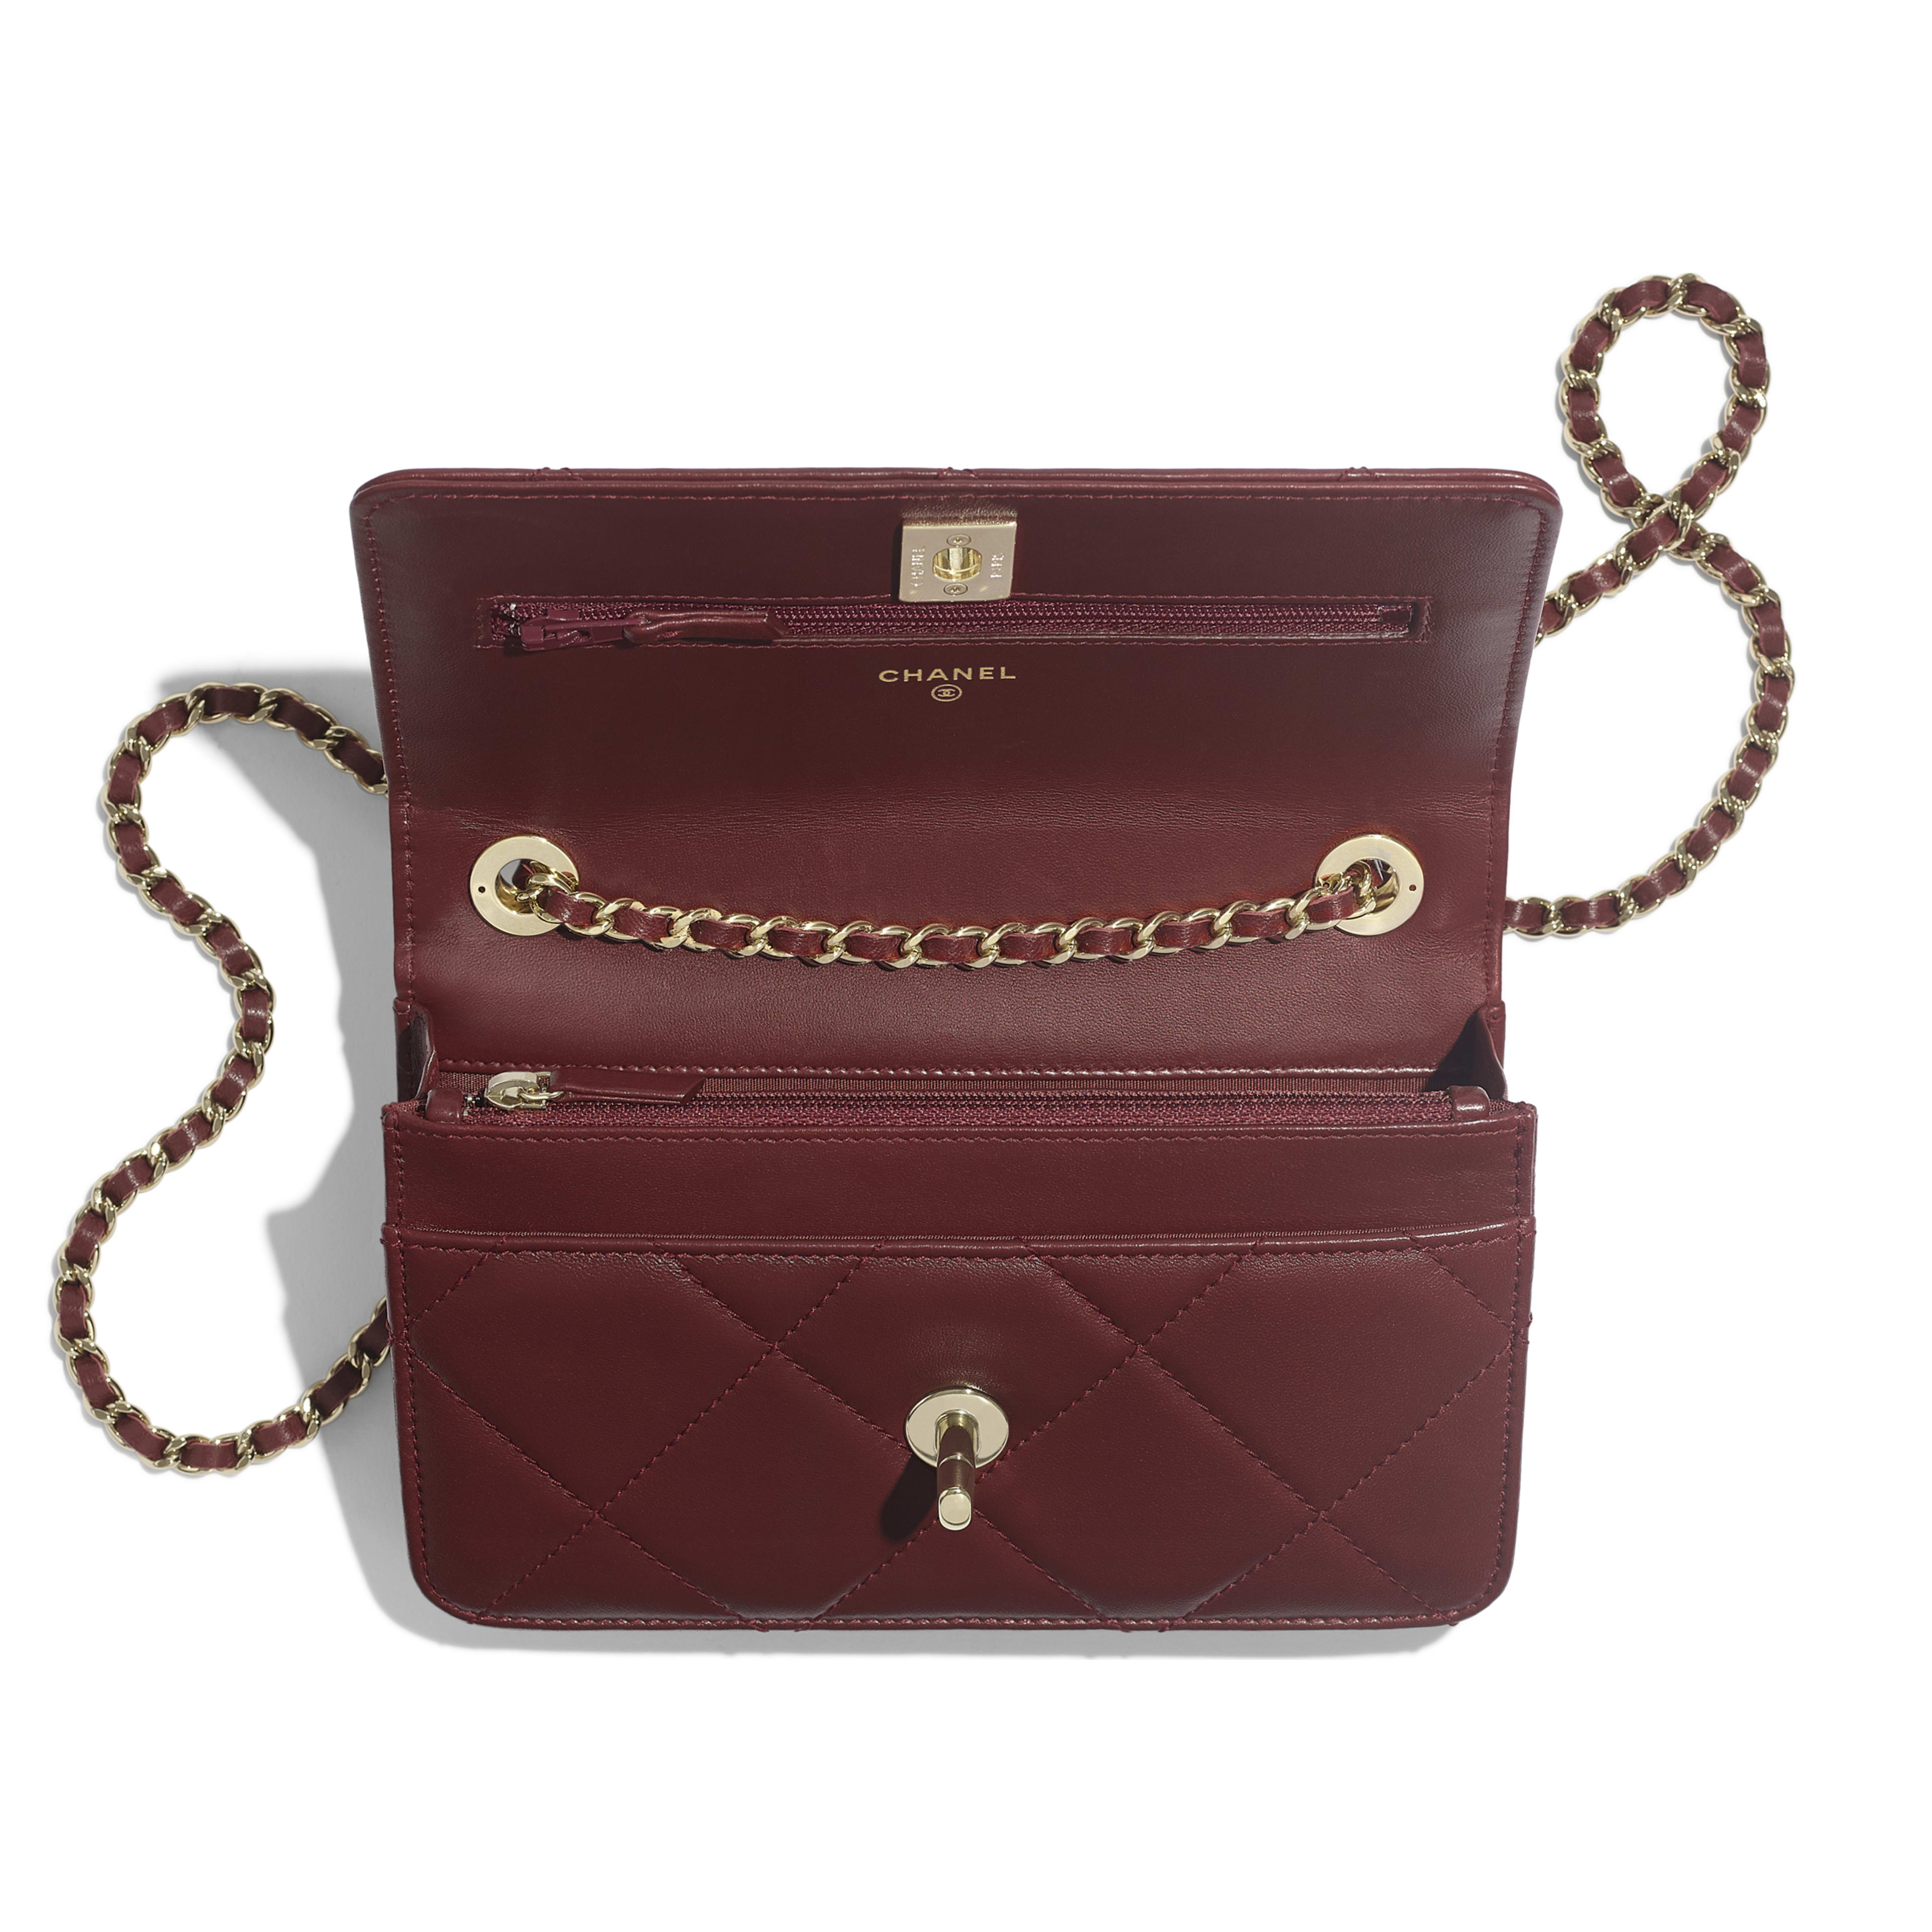 Wallet on Chain - Burgundy - Lambskin & Gold-Tone Metal - Other view - see full sized version